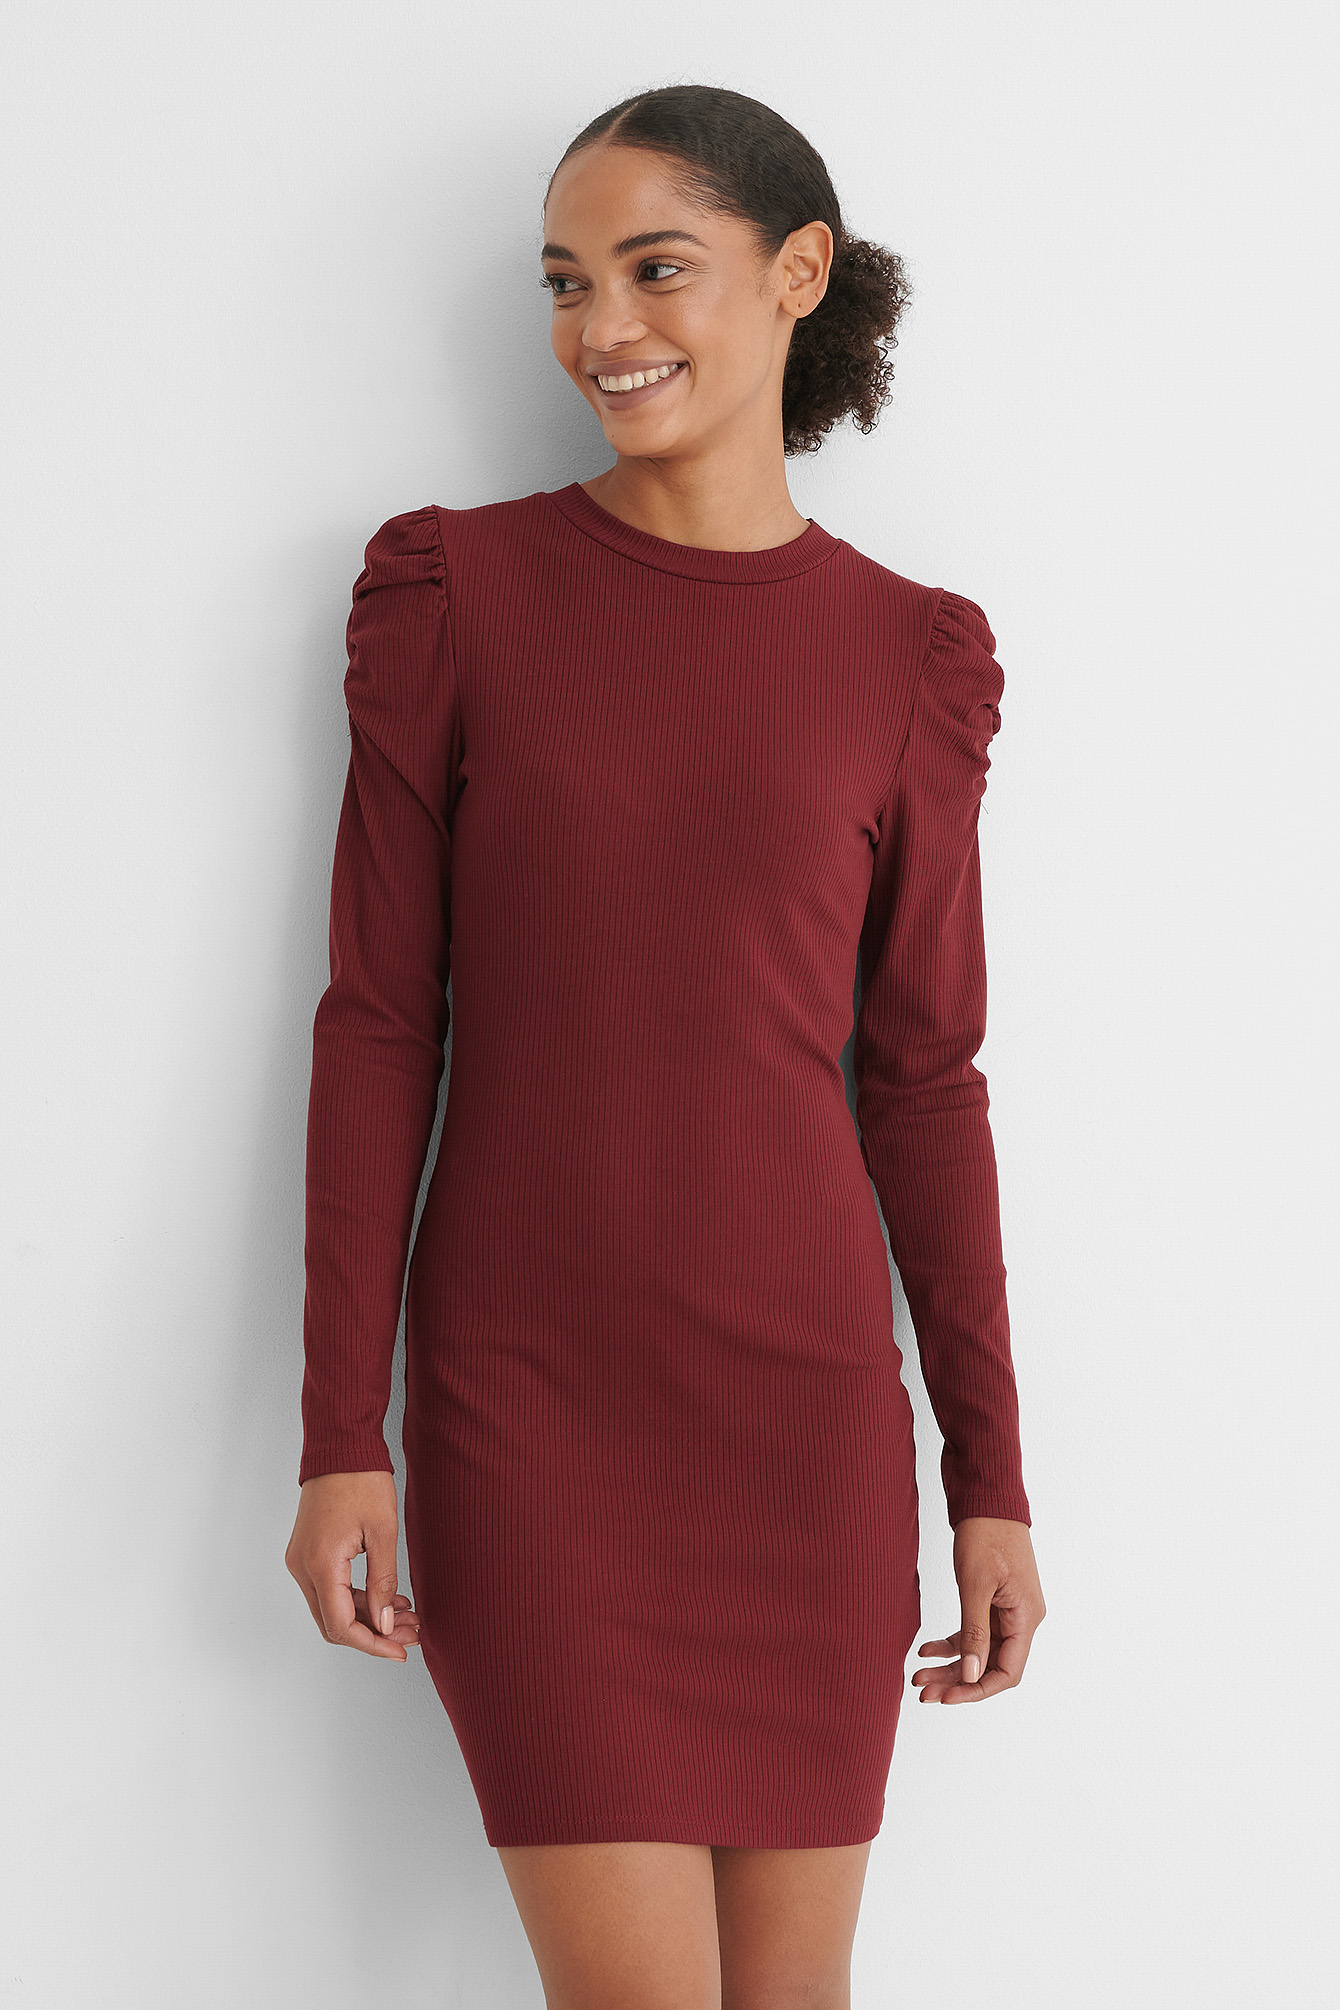 Burgundy Puff Shoulder Long Sleeve Dress